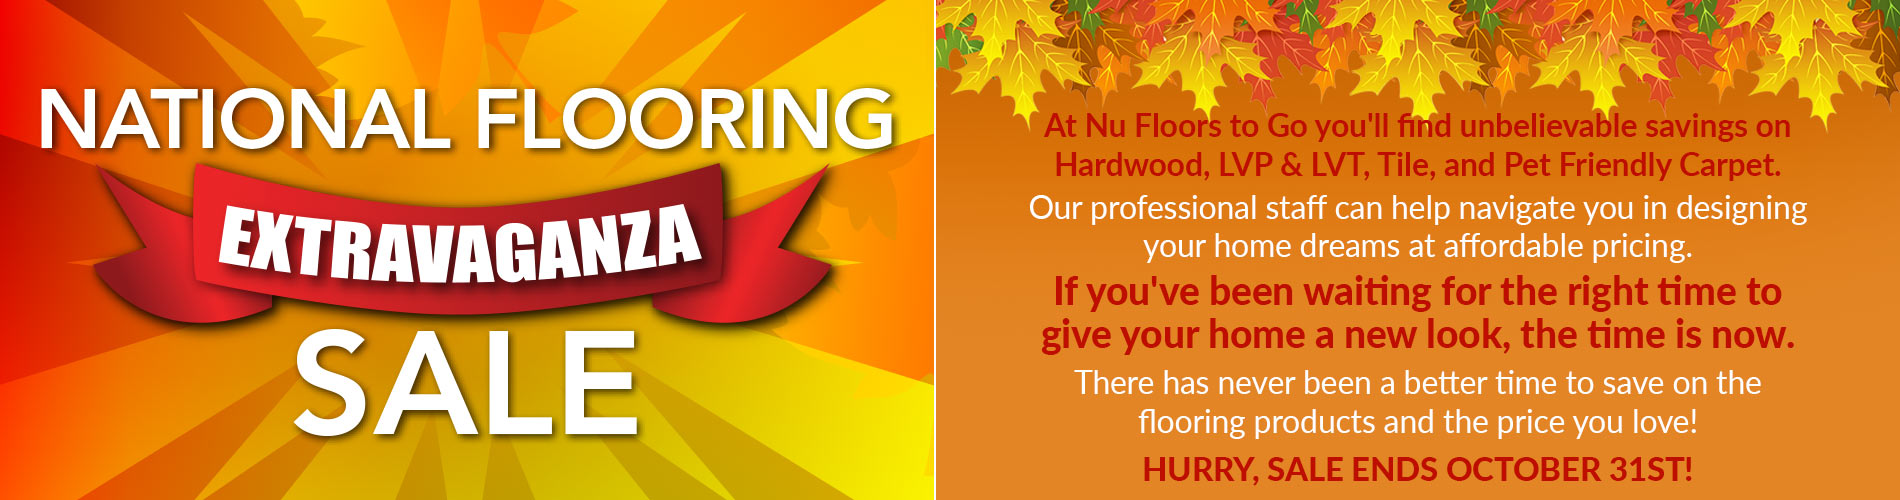 At Nu Floors to Go you'll find unbelievable savings on Hardwood, LVP & LVT, Tile, and Pet Friendly Carpet during out October National Extravaganza Sale! Our professional staff can help navigate you in designing your home dreams at affordable pricing. If you've been waiting for the right time to give your home a new look, the time is now. There has never been a better time to save on the flooring products and the price you love!